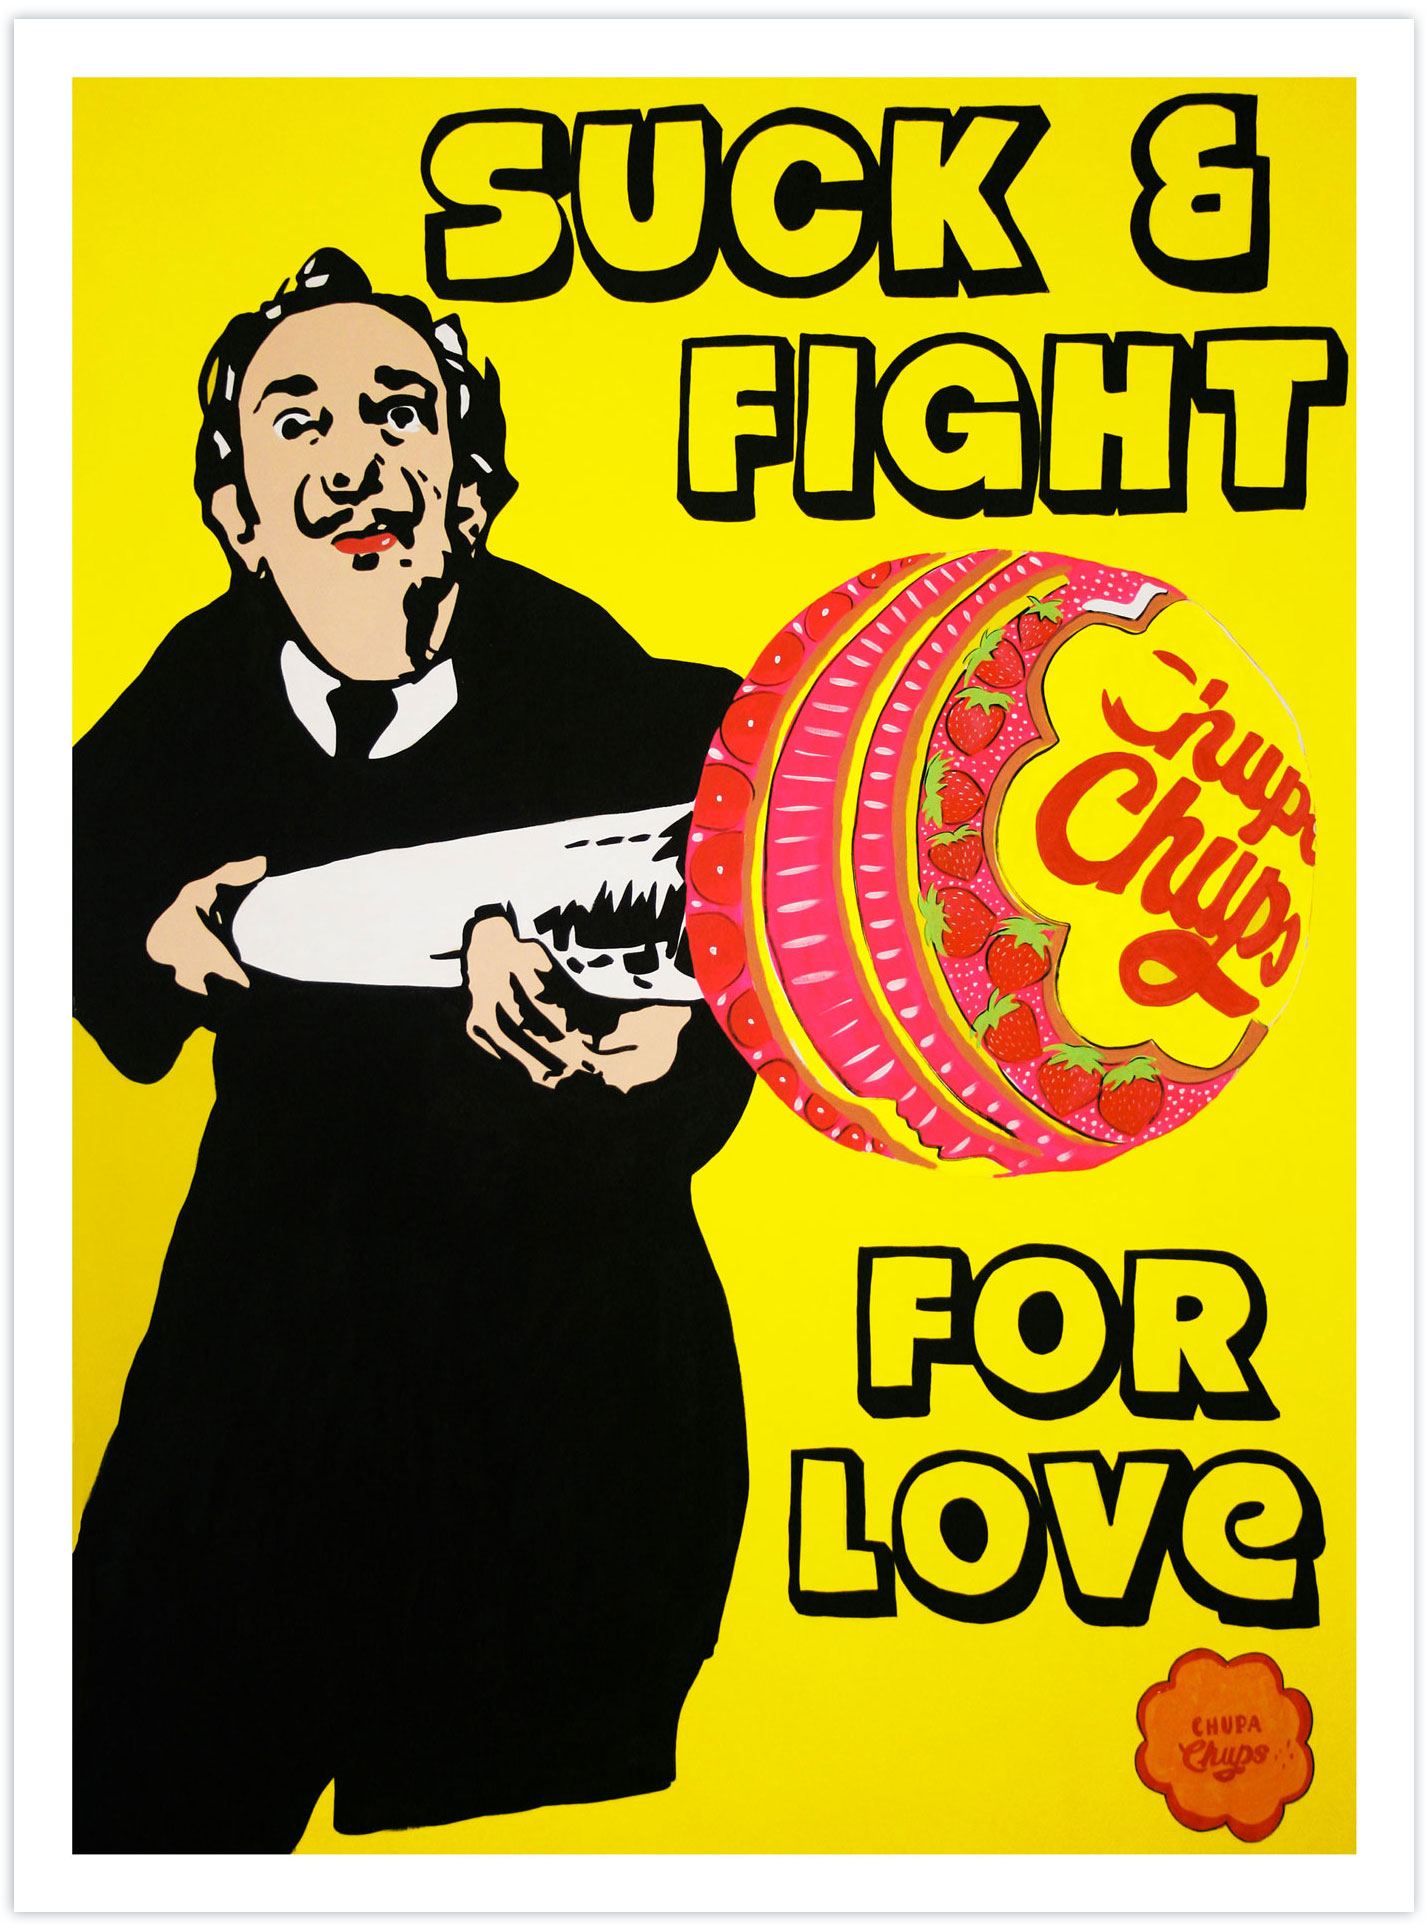 Suck & Fight For Love (Salvador Dalí) 2018